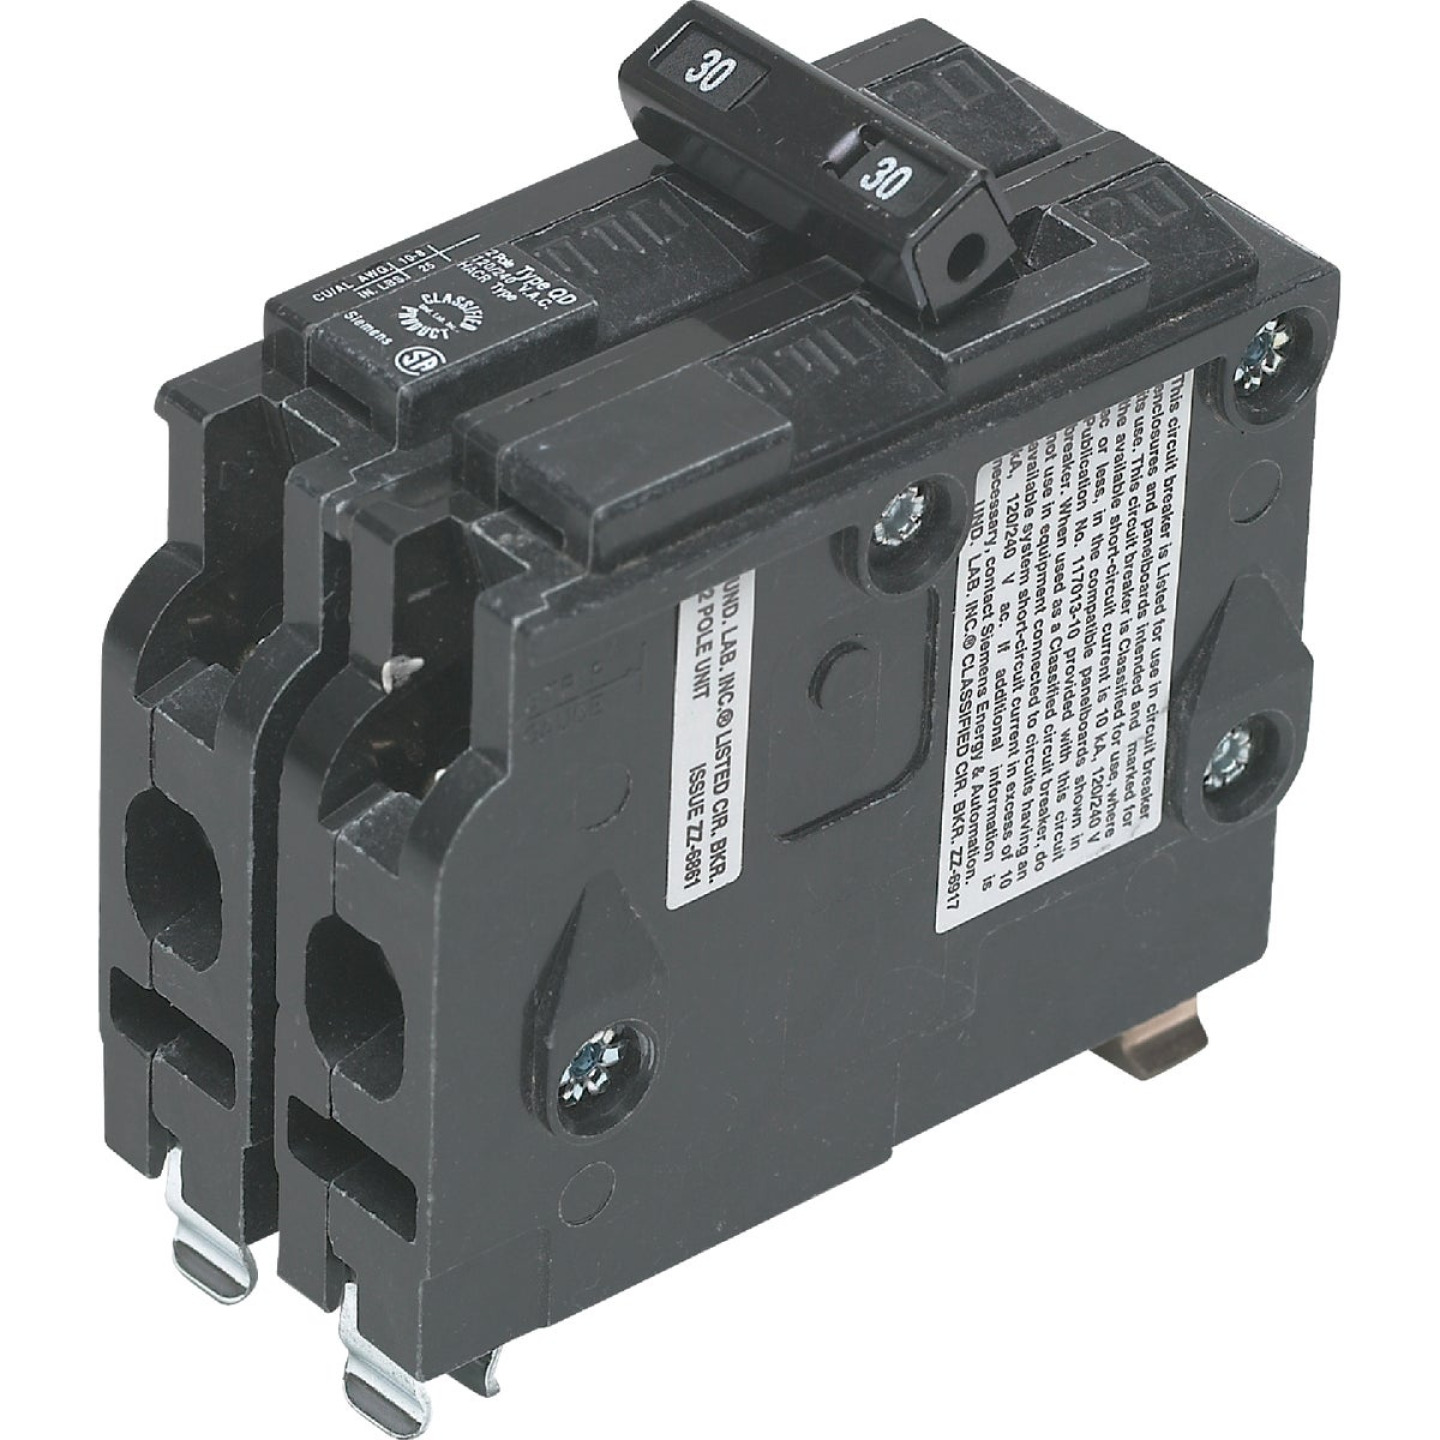 Connecticut Electric 30A Double-Pole Standard Trip Packaged Replacement Circuit Breaker For Square D Image 1